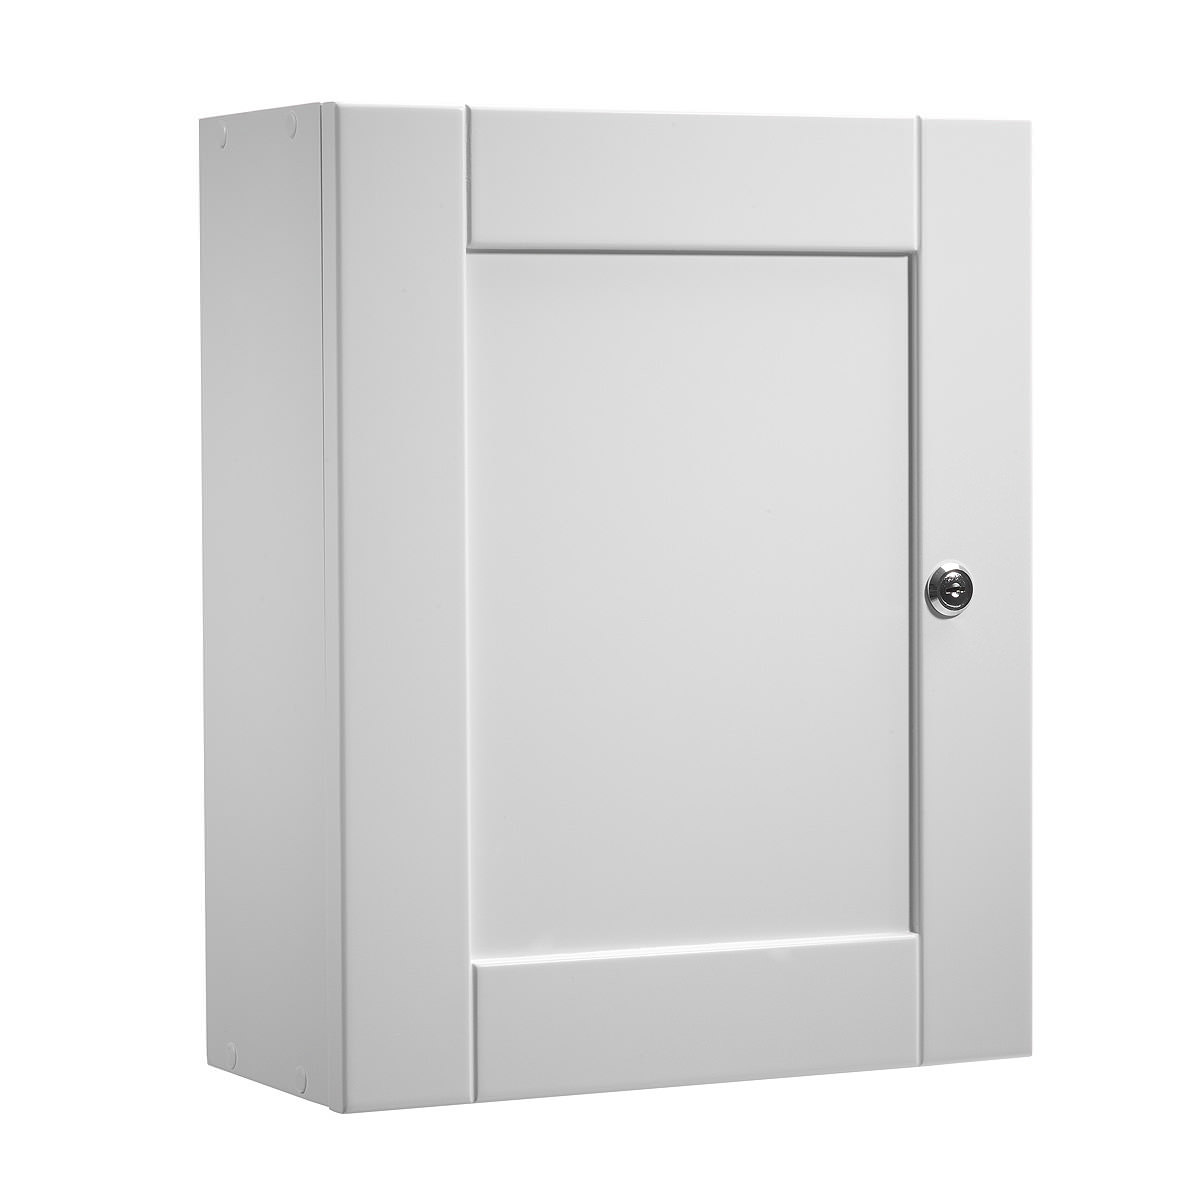 Roper rhodes medicab lockable single door wall cabinet white 334mm med340 for 50cm kitchen cabinets